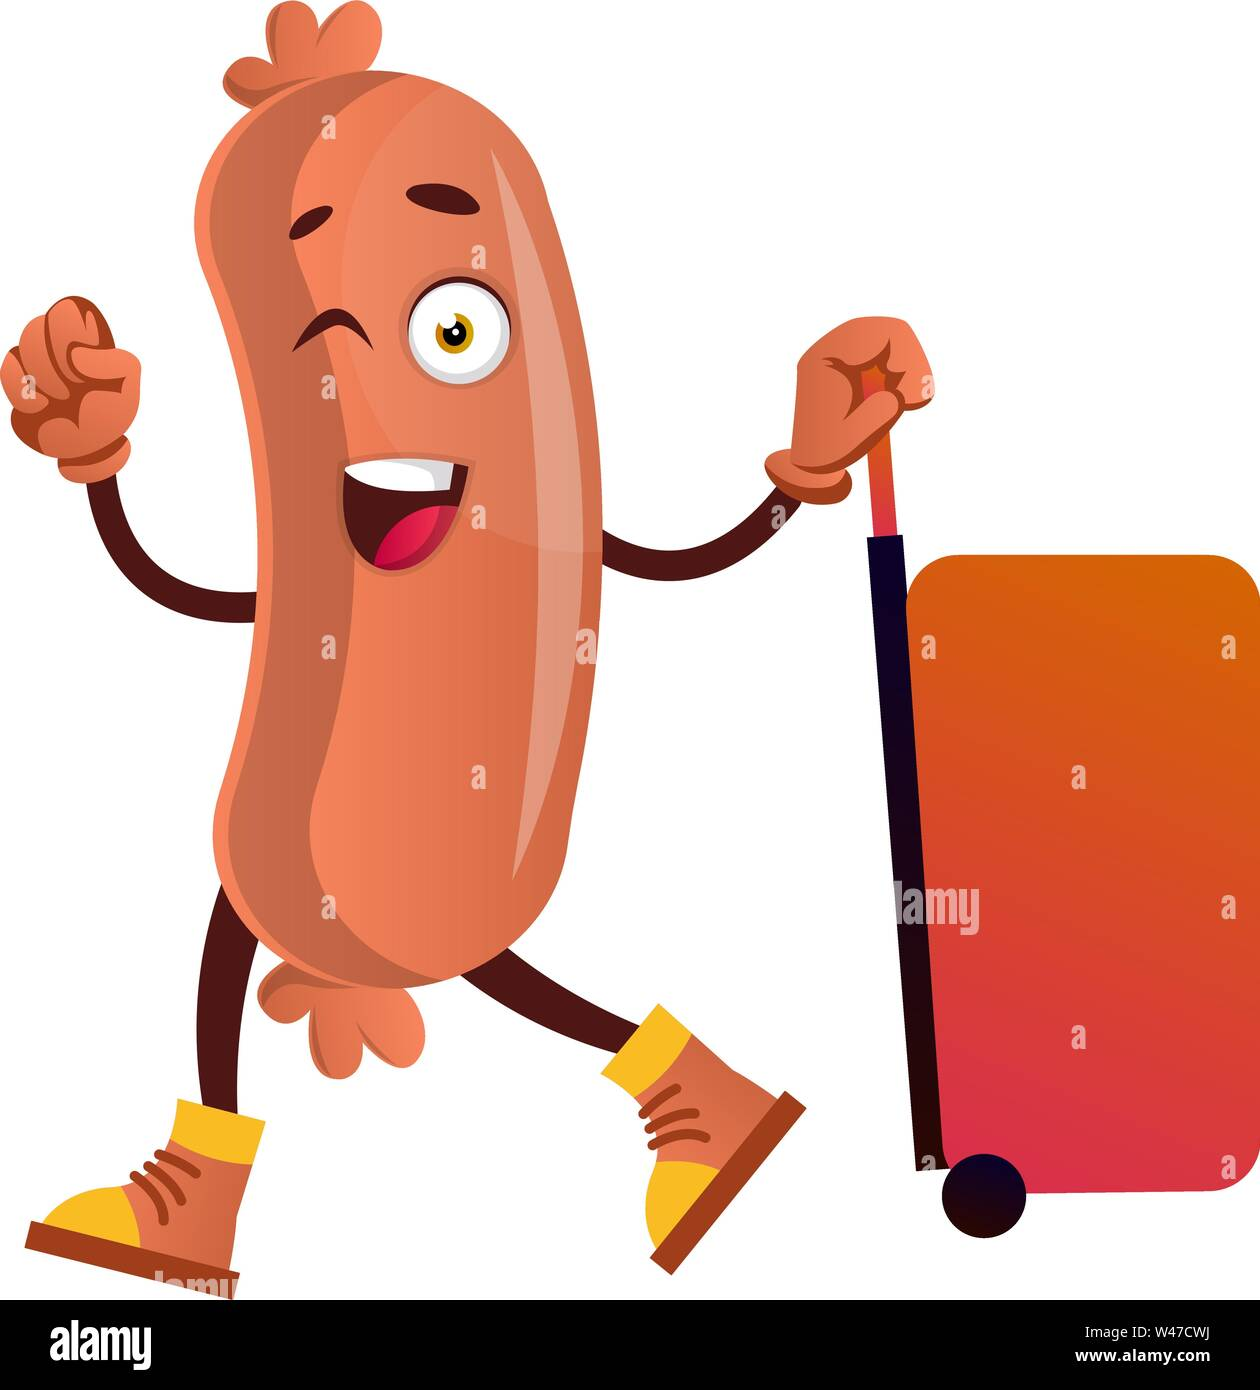 Sausage with big red suitcase, illustration, vector on white background. - Stock Image